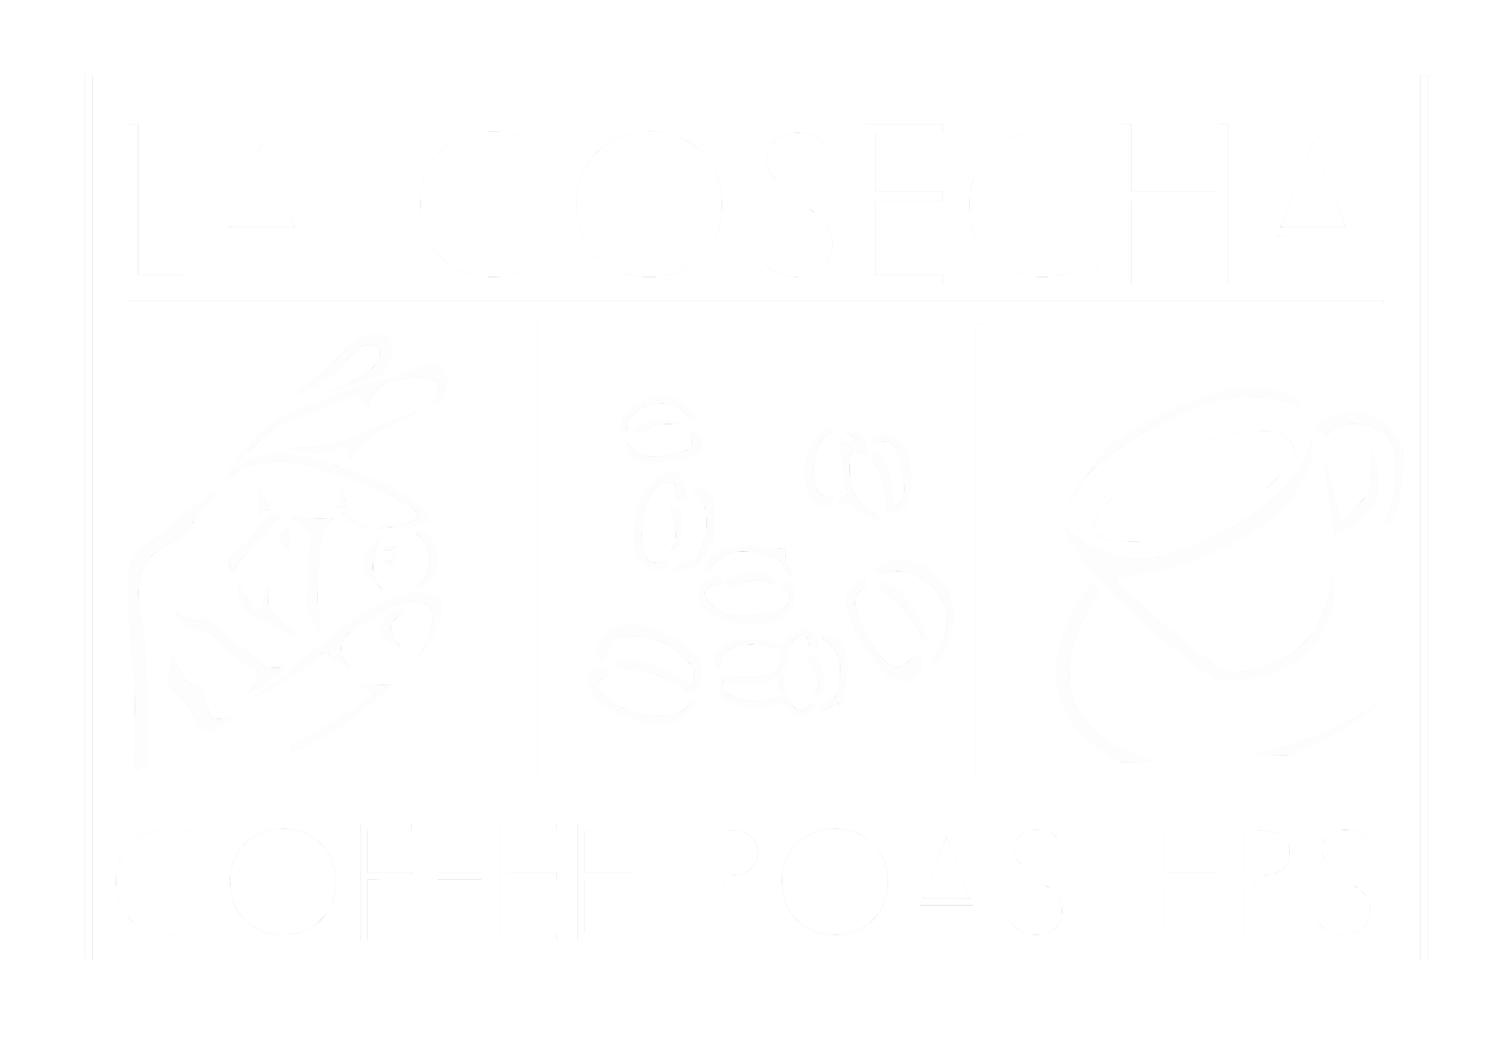 LA COSECHA COFFEE ROASTERS